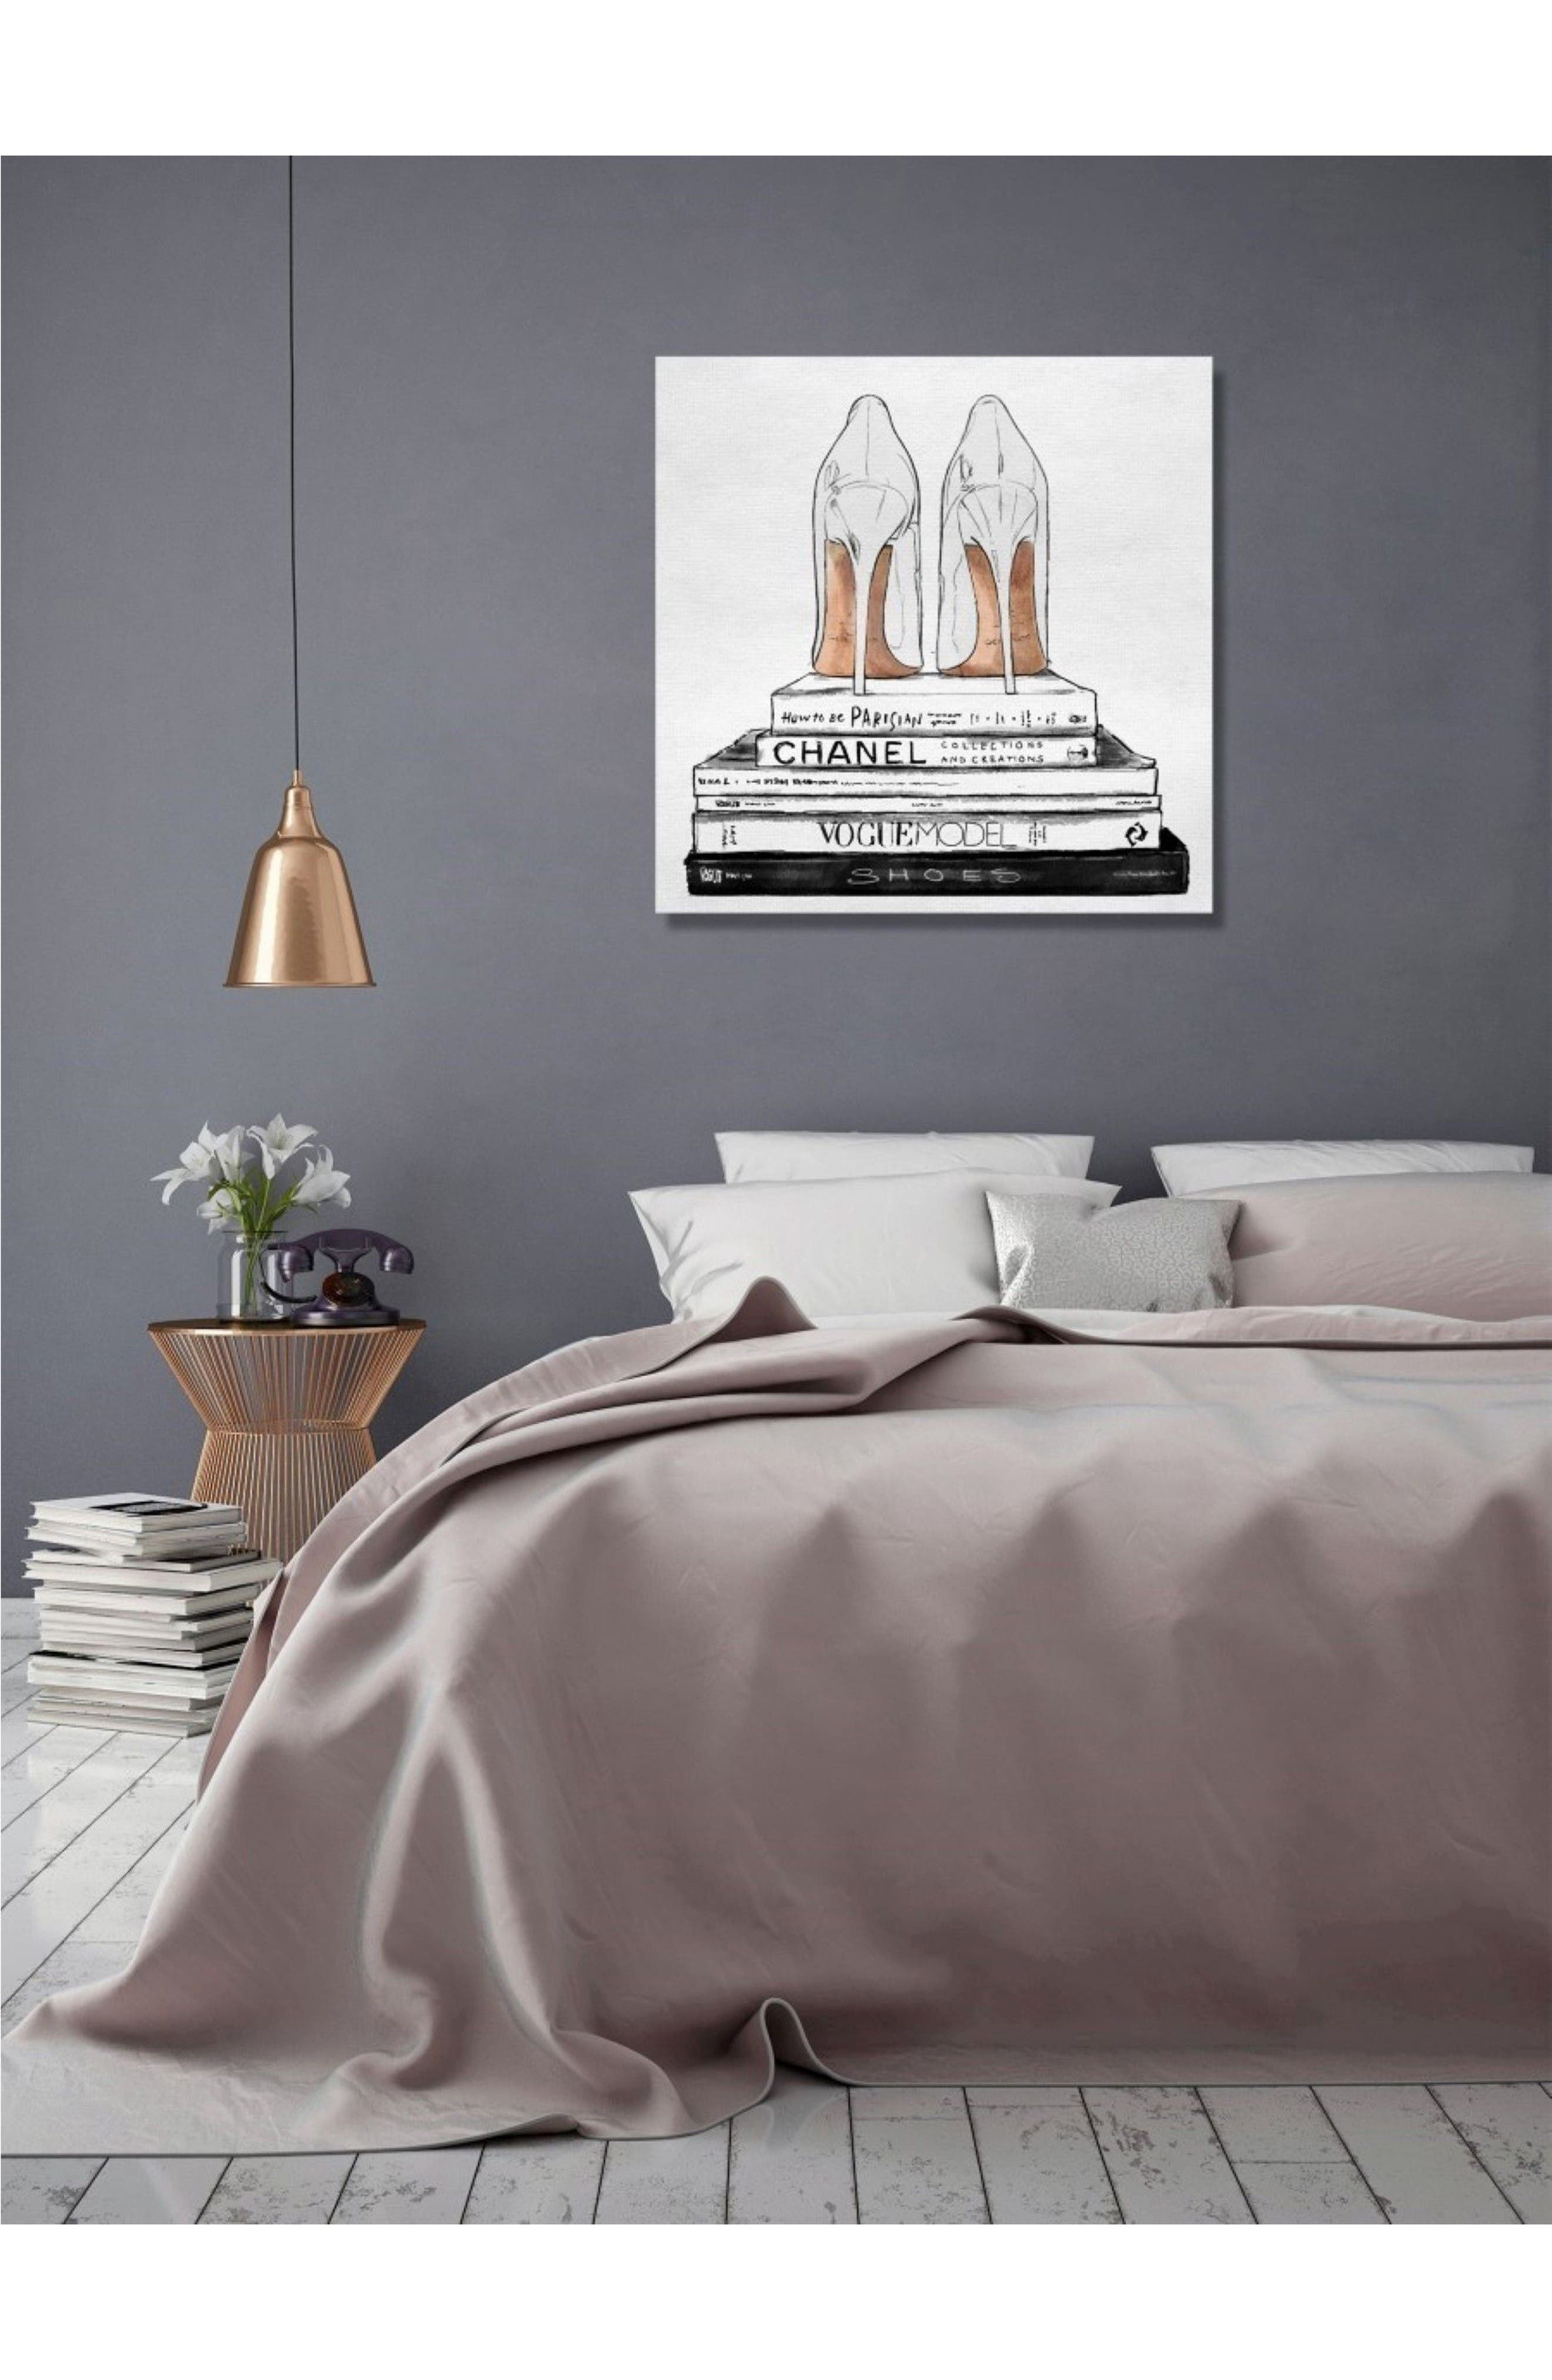 Alternate Image 2  - Oliver Gal Standalone Shoes Canvas Wall Art